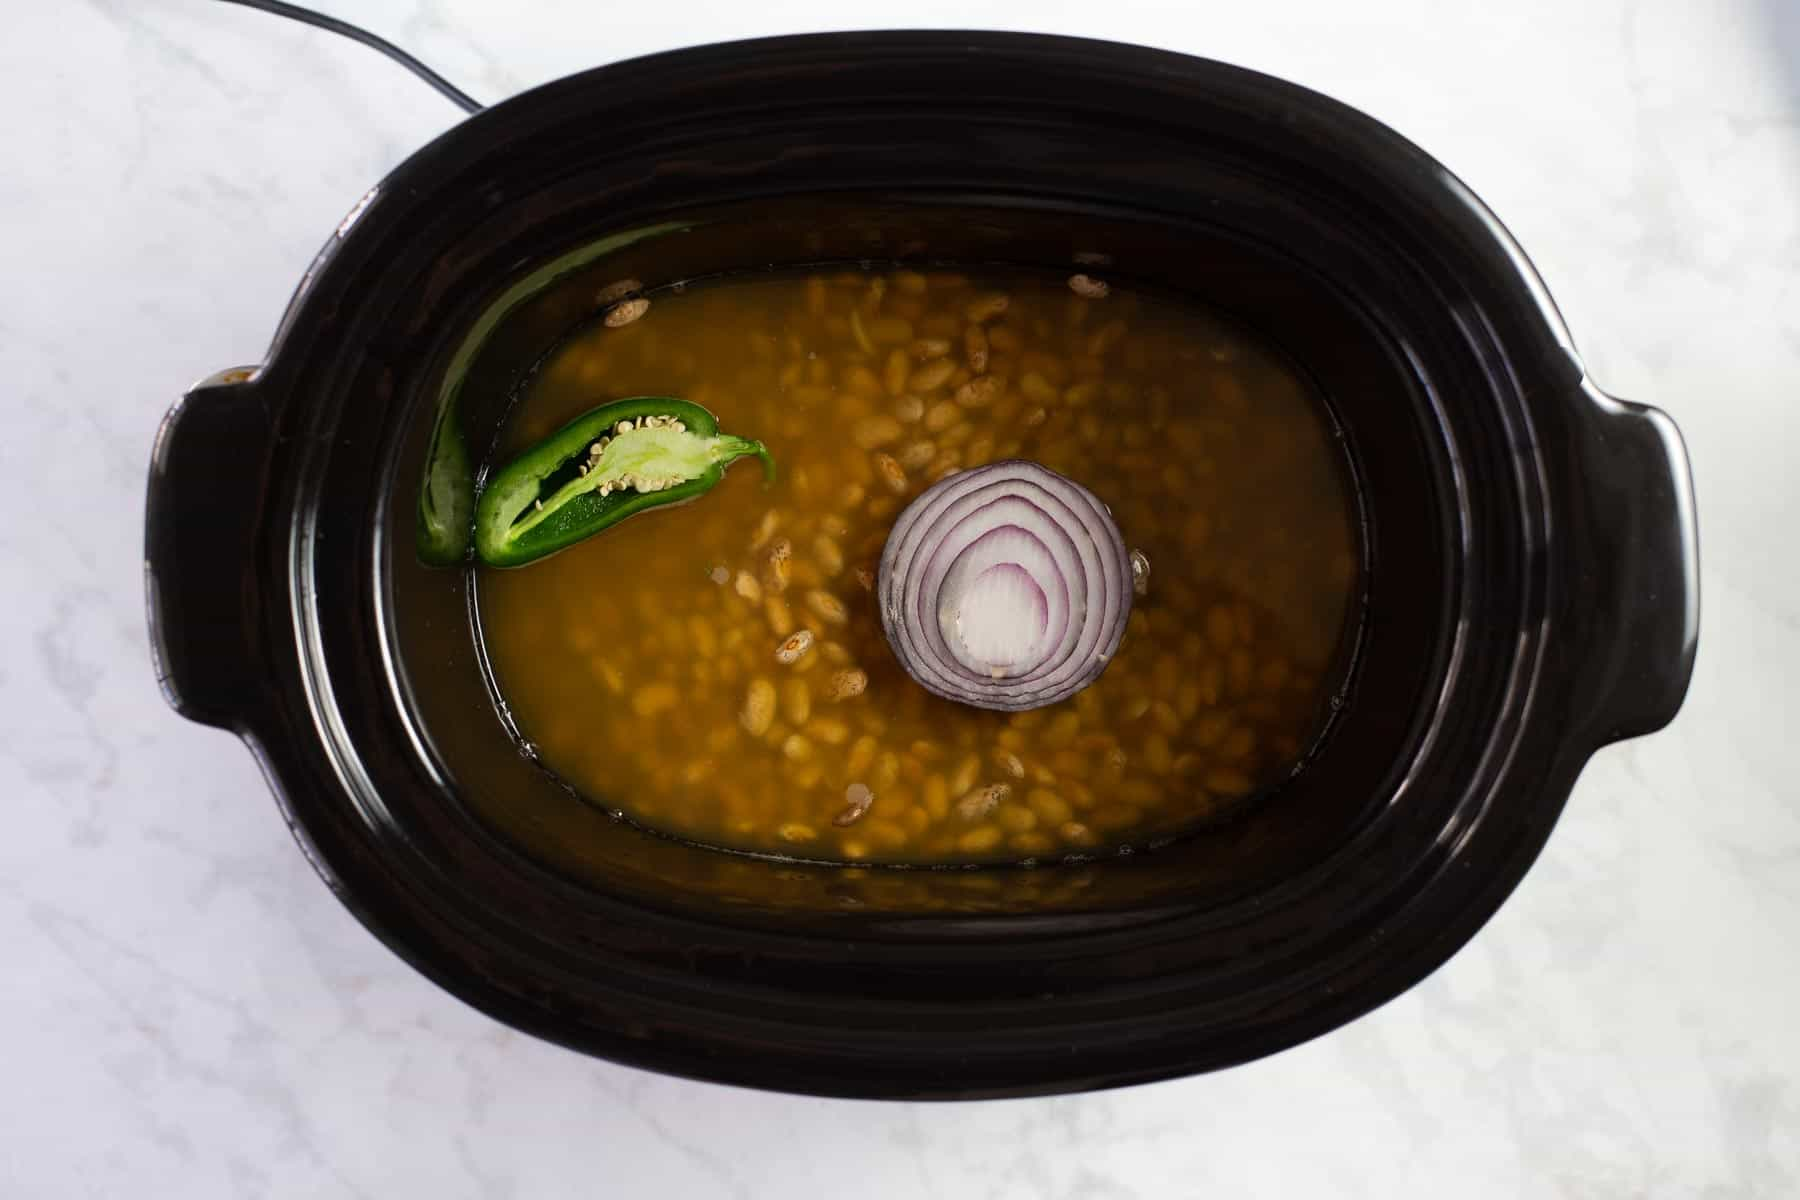 making Mexican beans in a crock pot